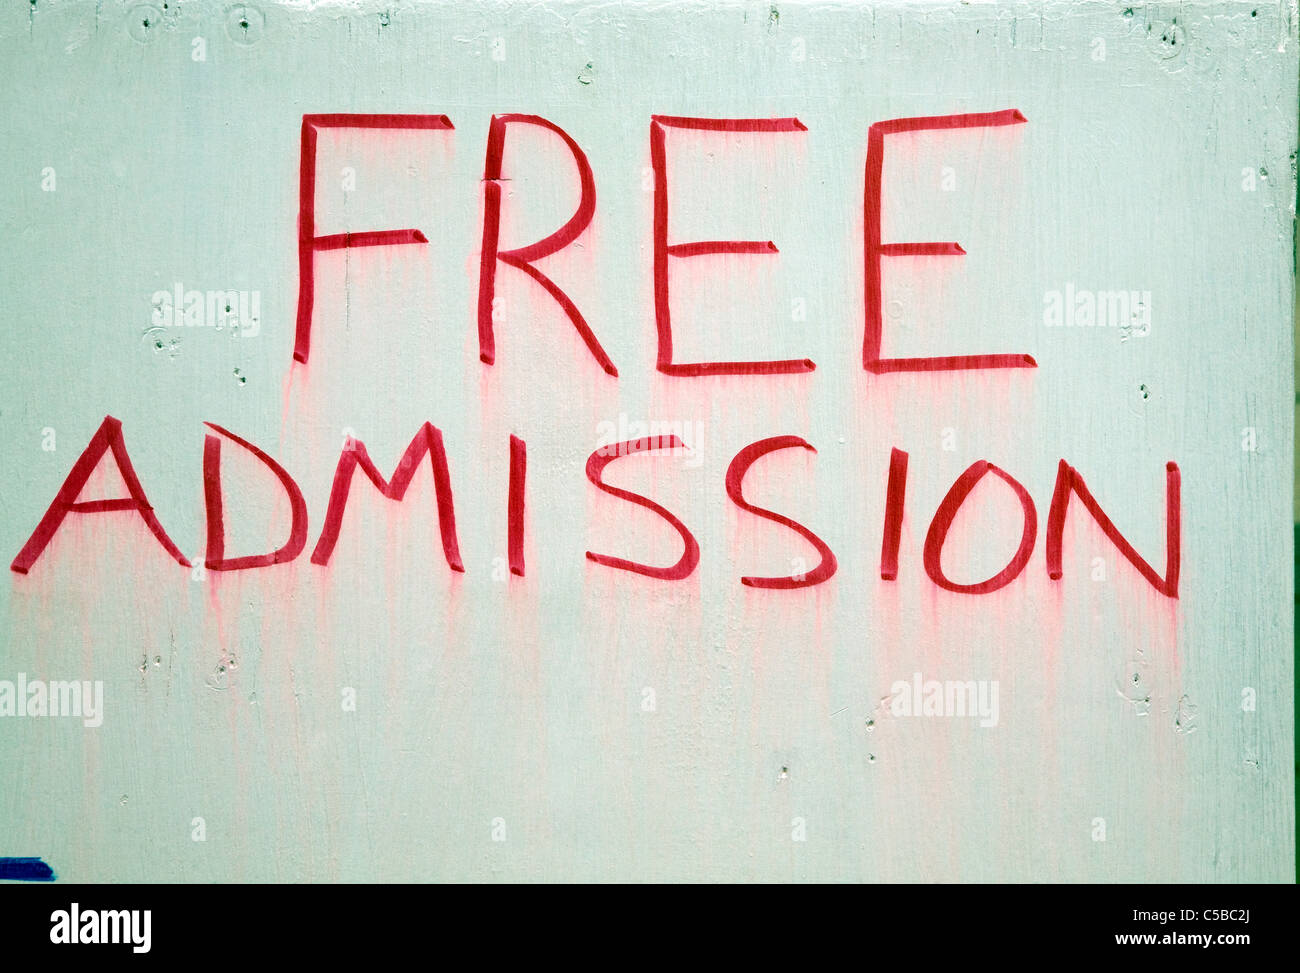 Free Admission sign in red paint on white board - Stock Image